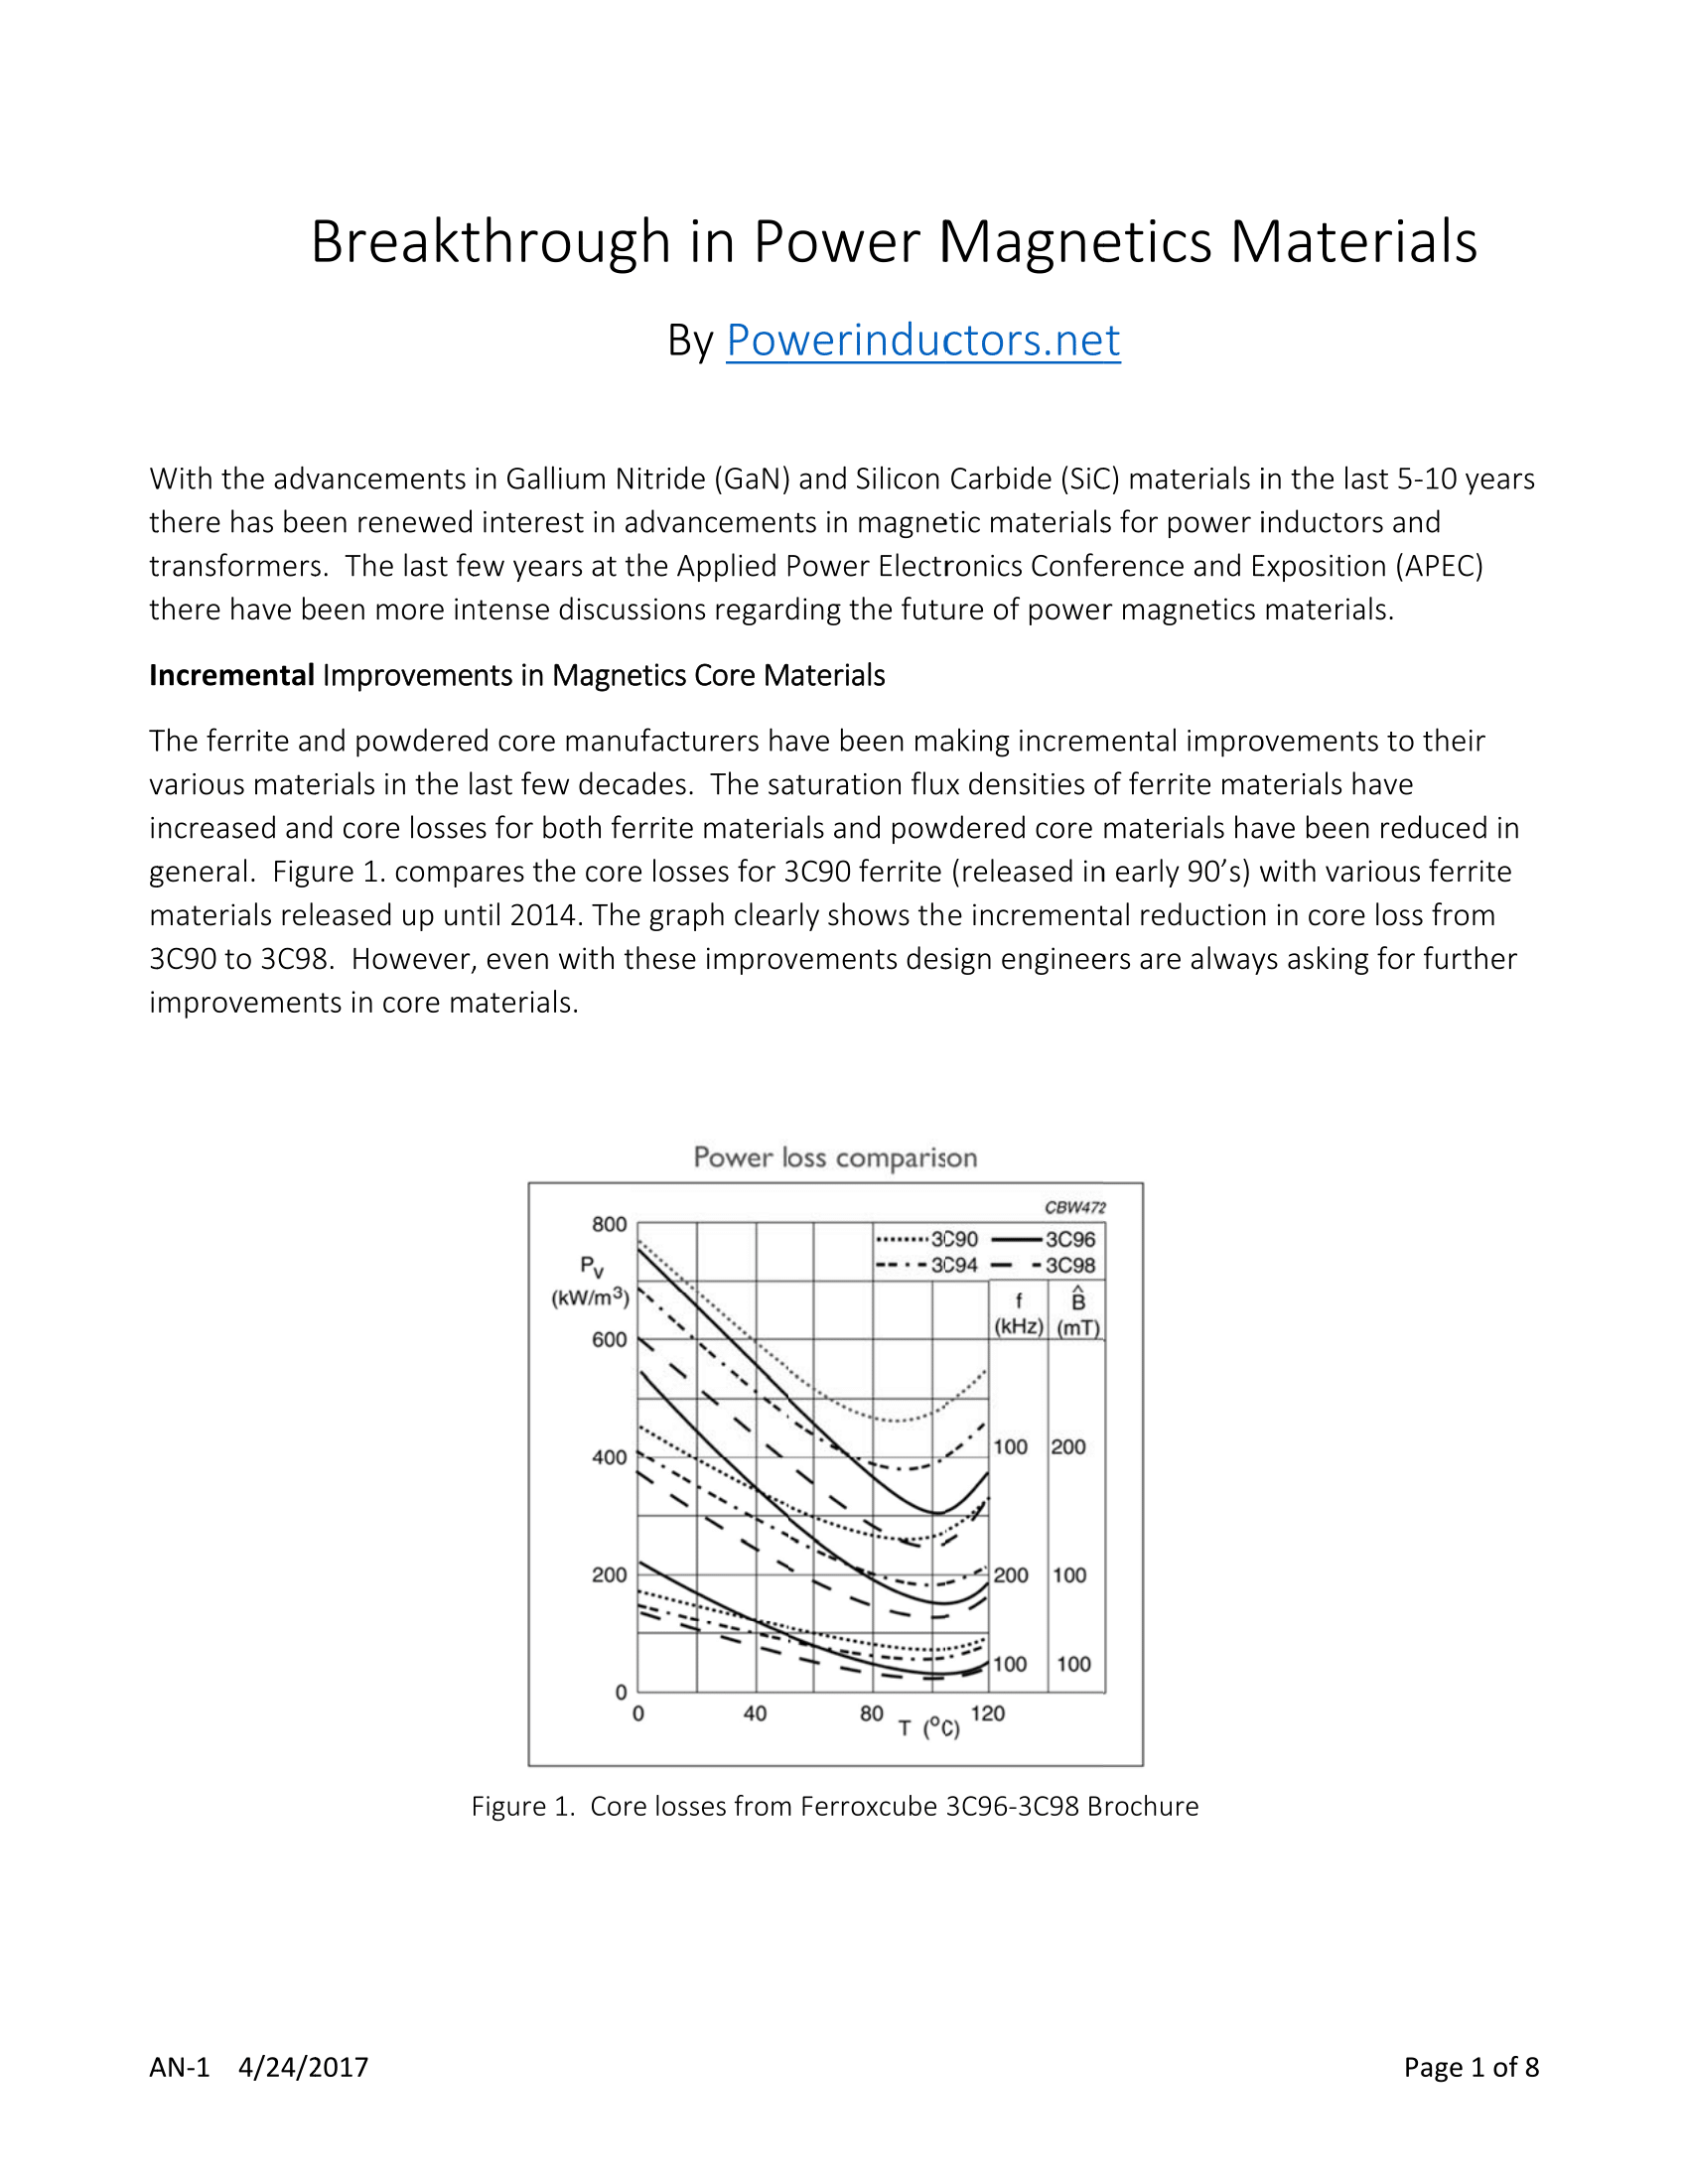 Breakthrough_in_Power_Magnetics_Materials-1.png